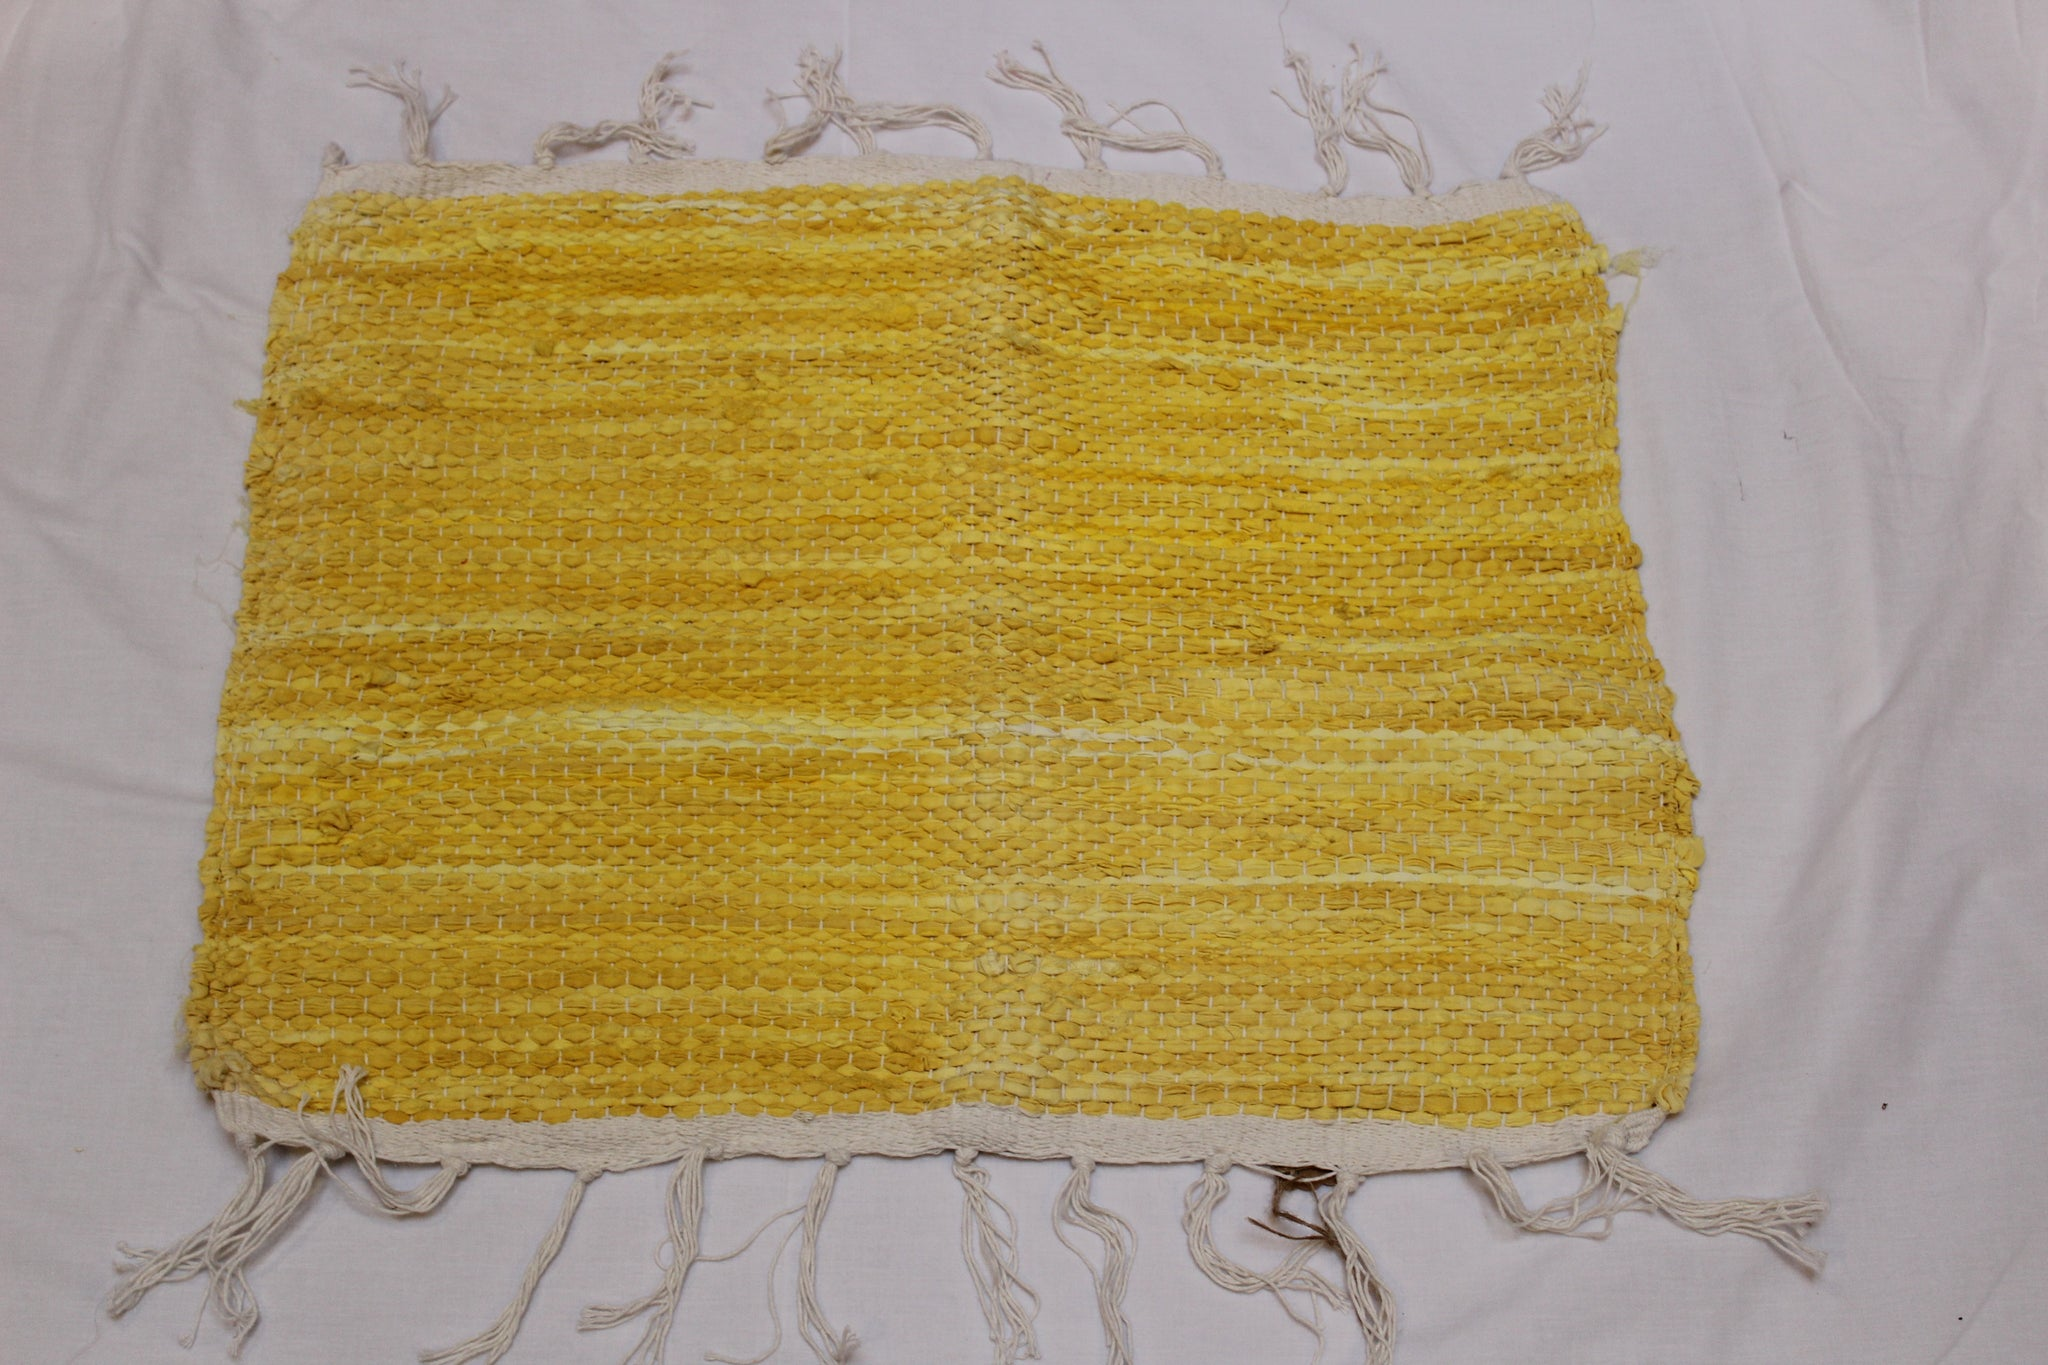 SALE 50% off at Checkout - Rug, Hand Woven, Yellow